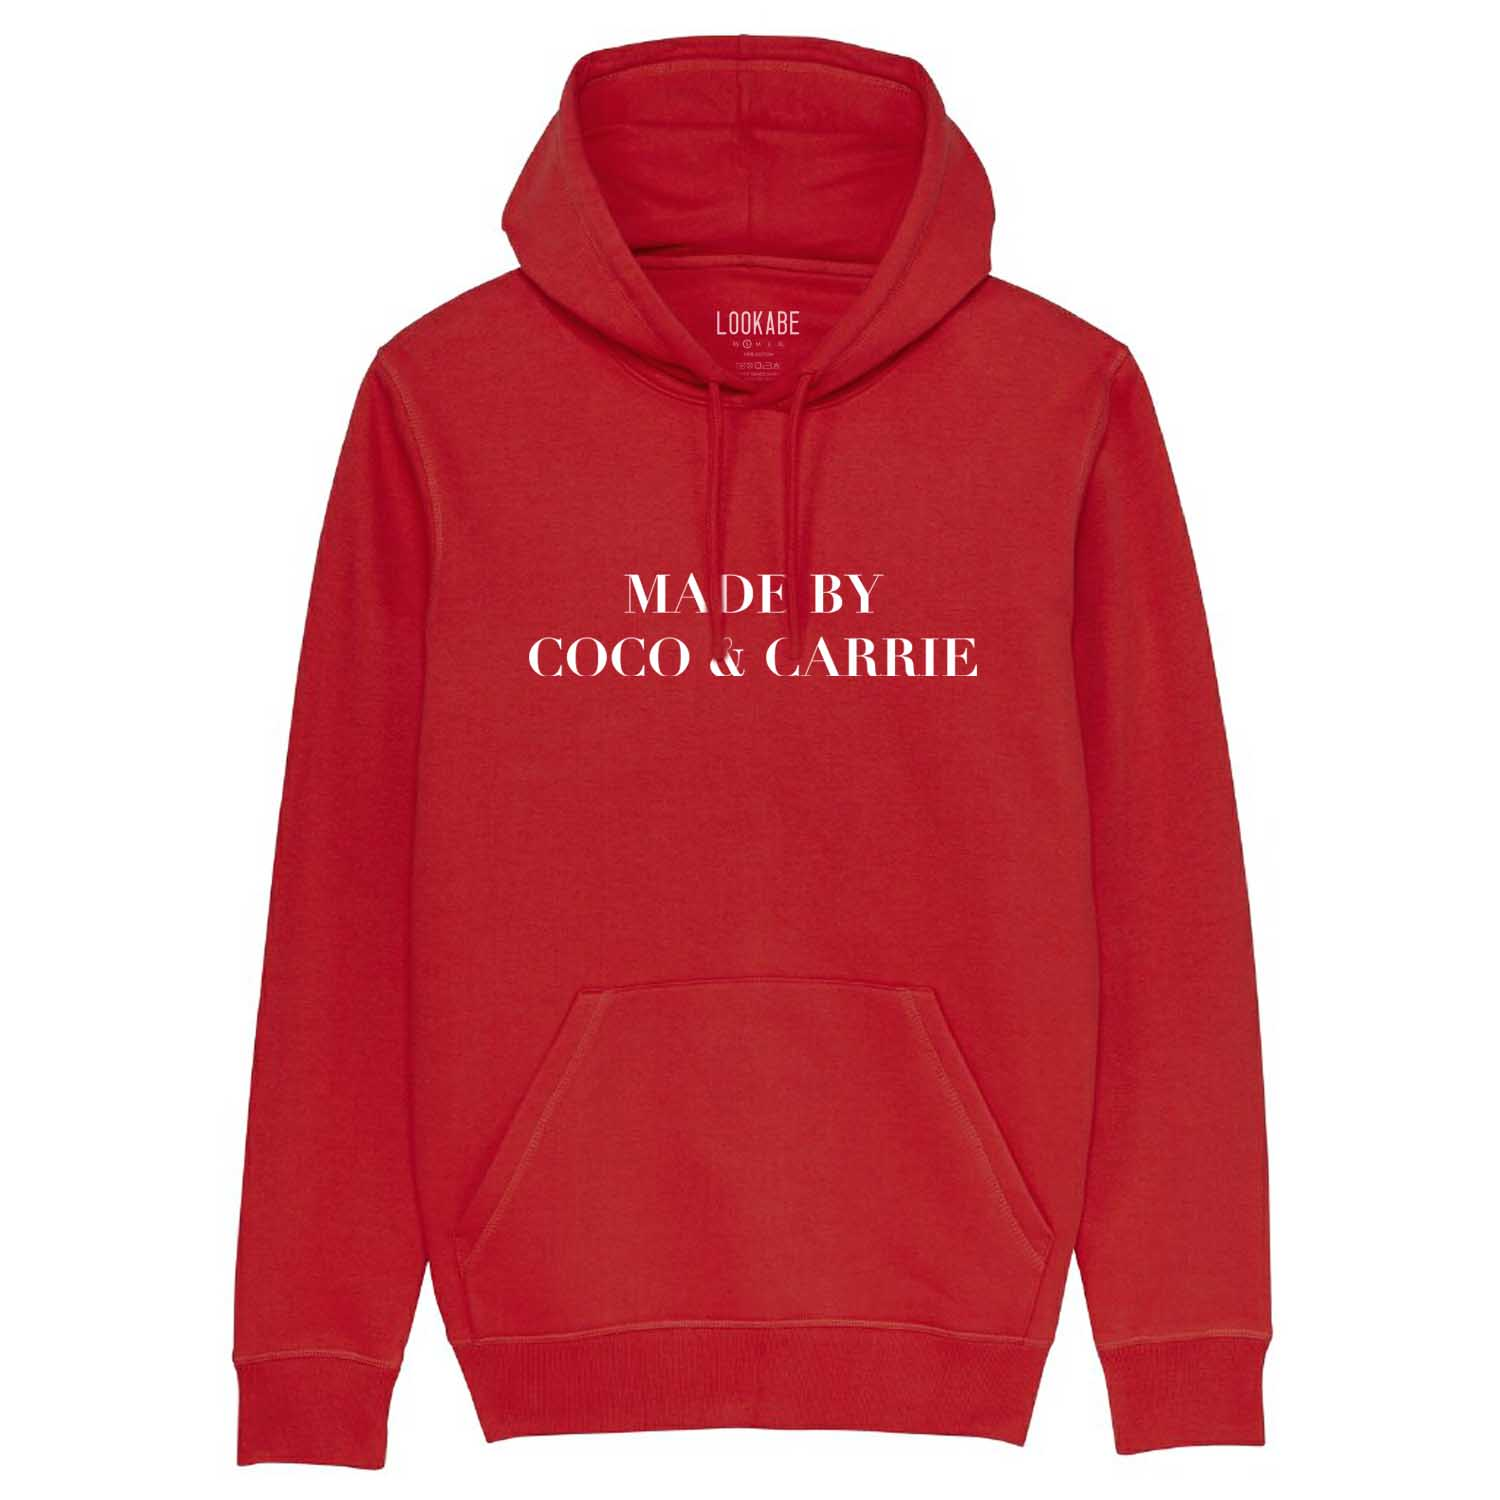 Hoodie - Made by Coco & Carrie